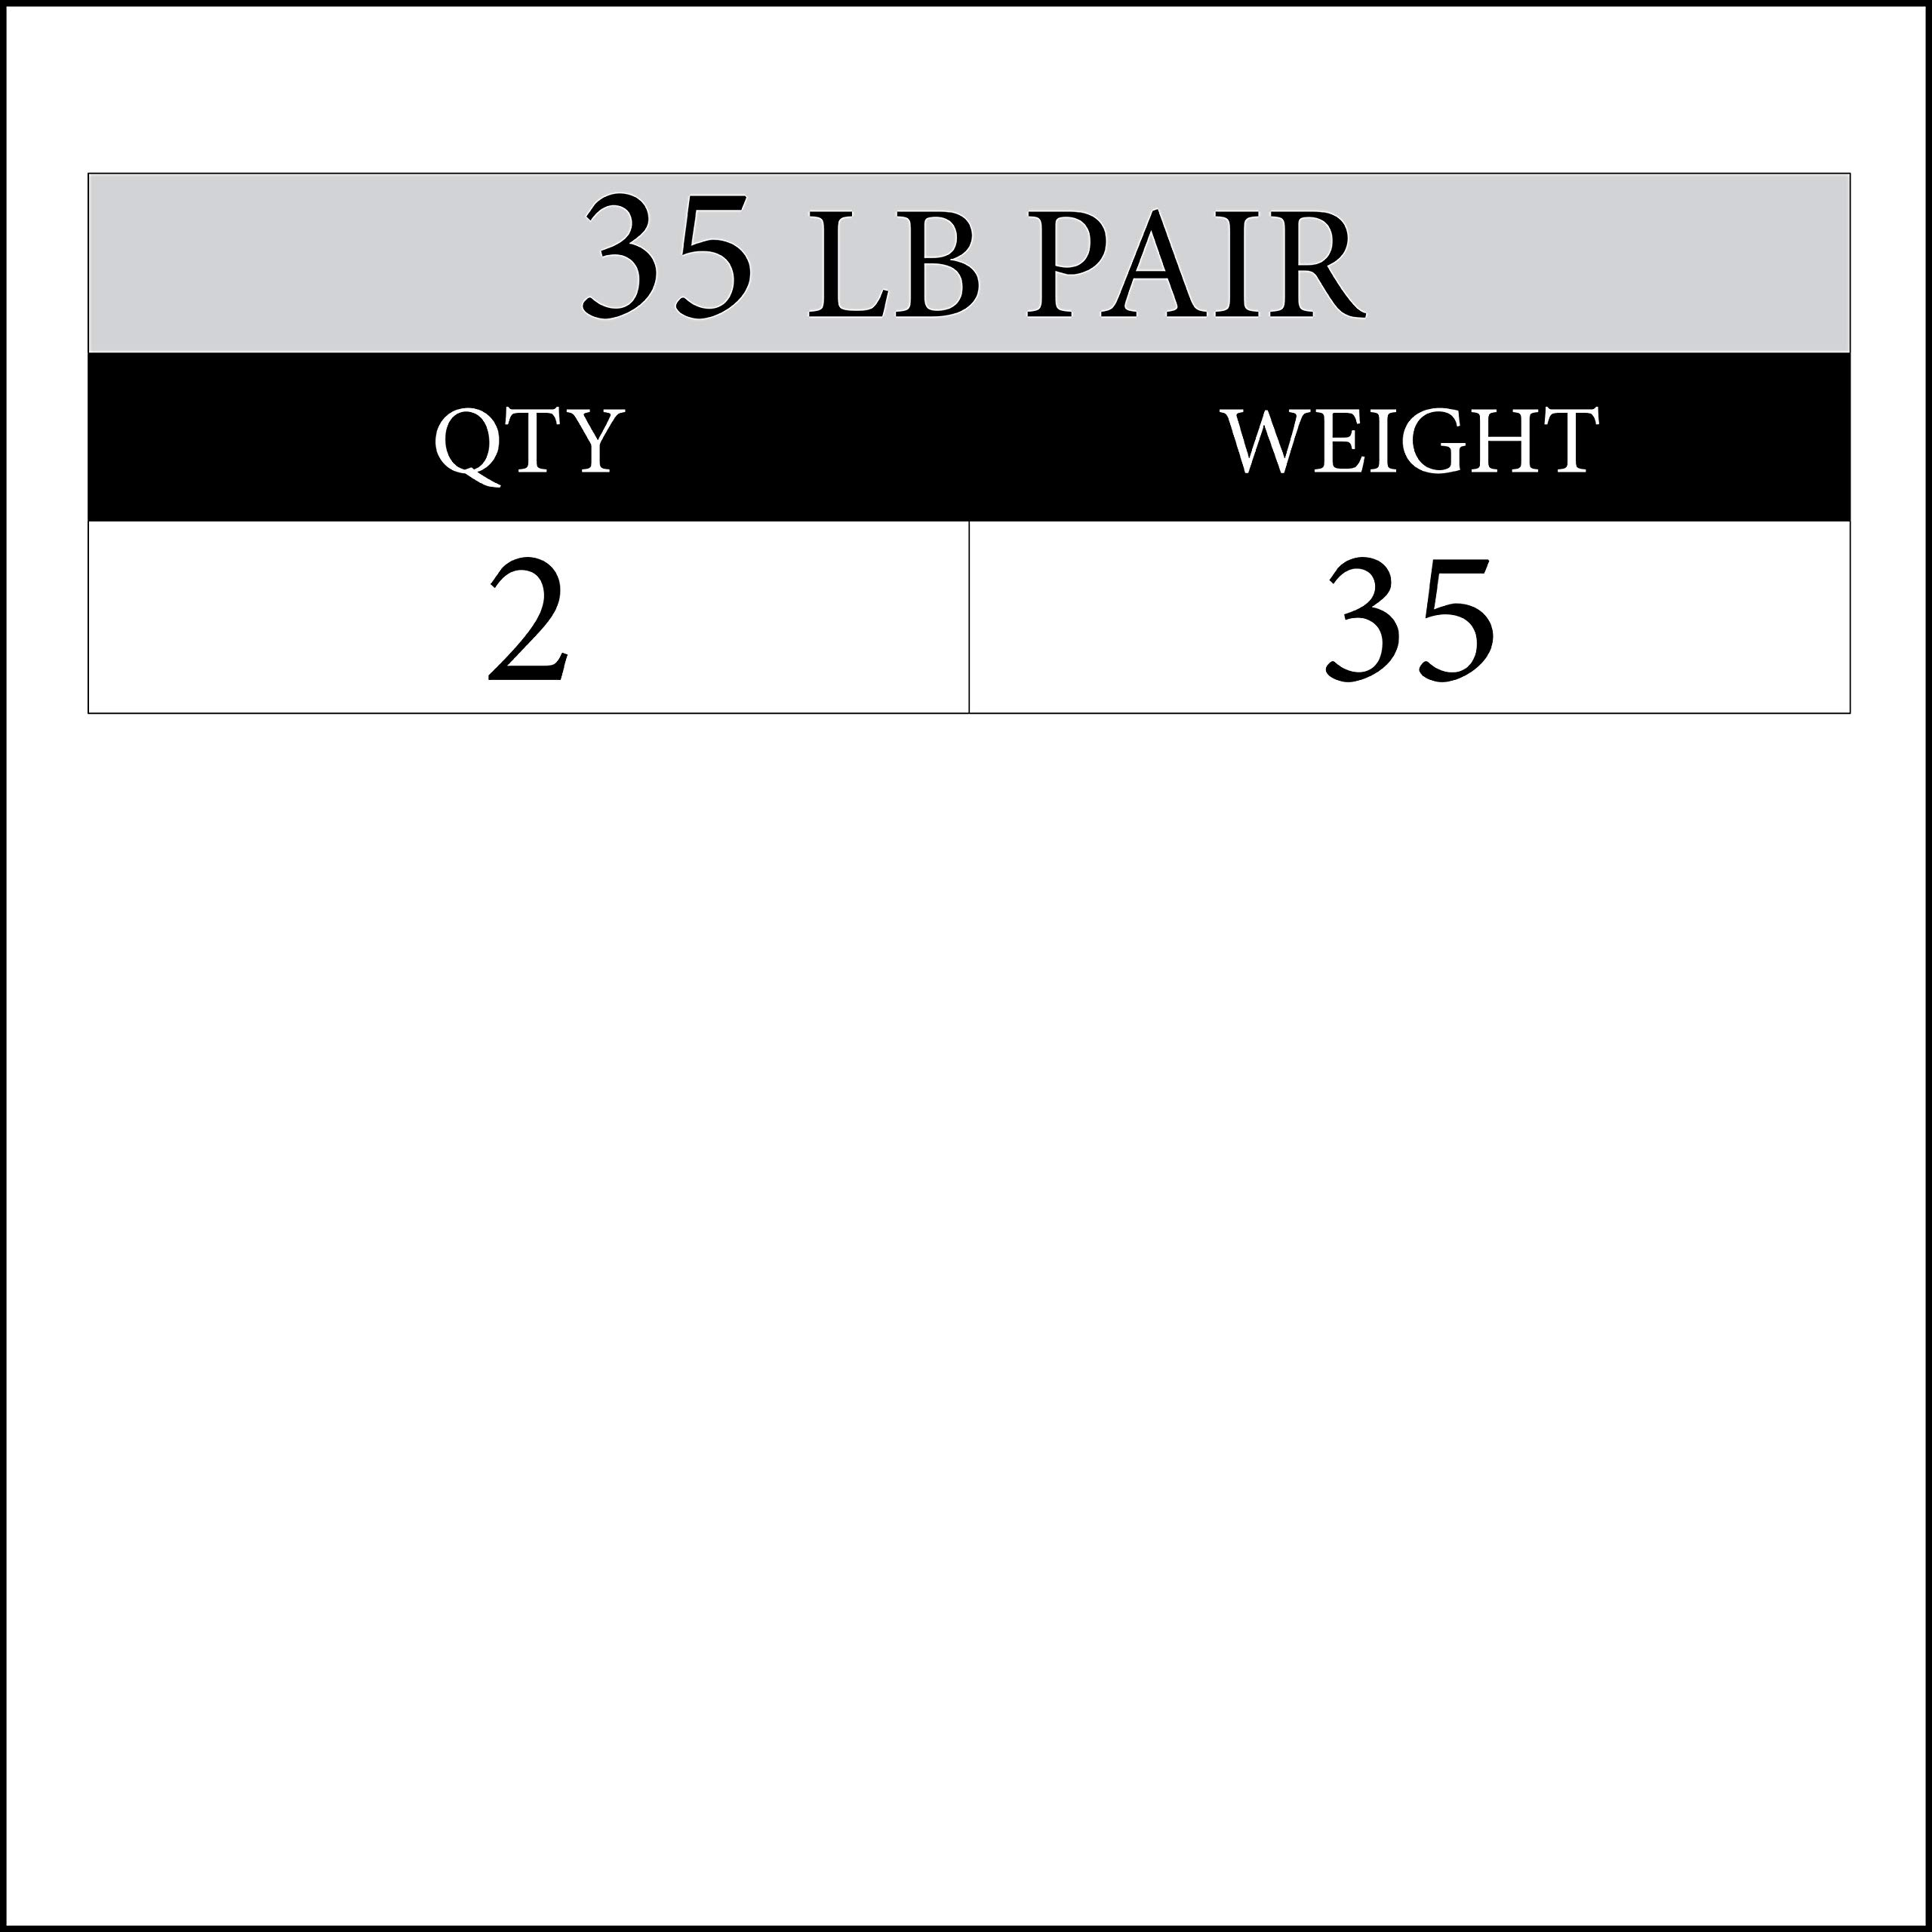 XMark 35 lb Pair Signature Plates, One-Year Warranty, Olympic Weight Plates, Cutting-Edge Design by XMark Fitness (Image #2)